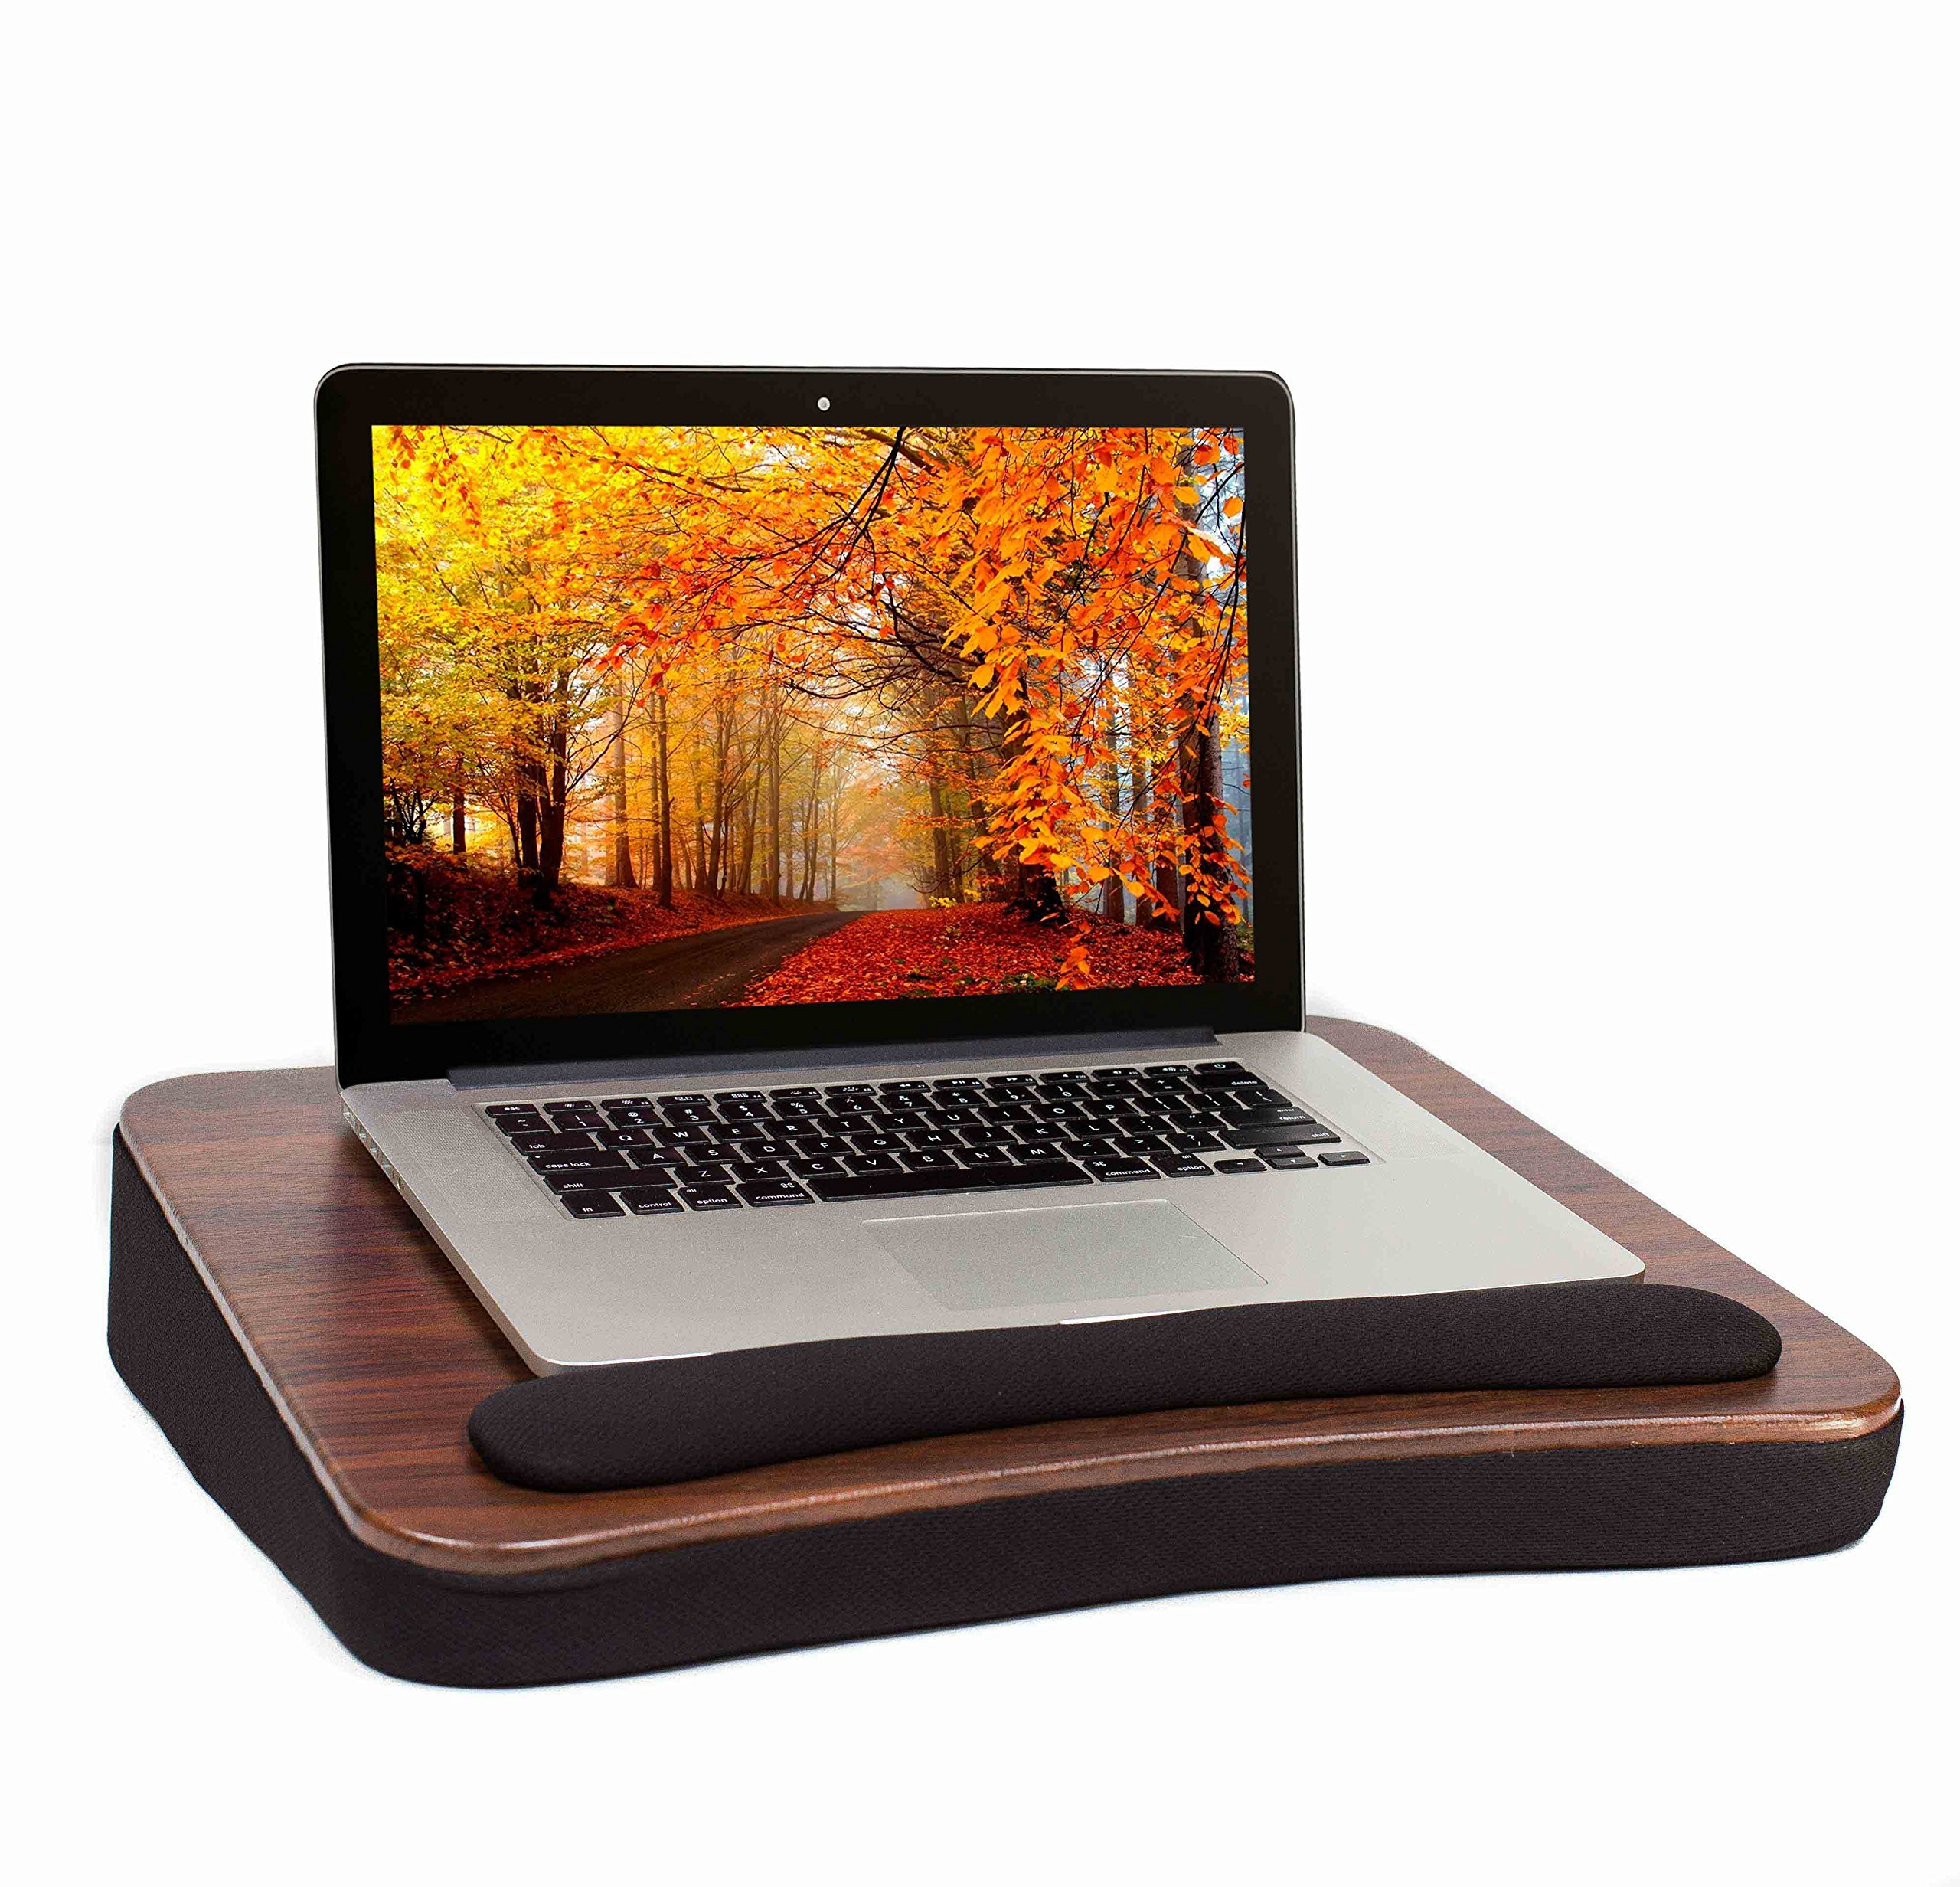 Sofia + Sam All Purpose Lap Desk (Wood top) | Supports Laptops Up To 17 Inches